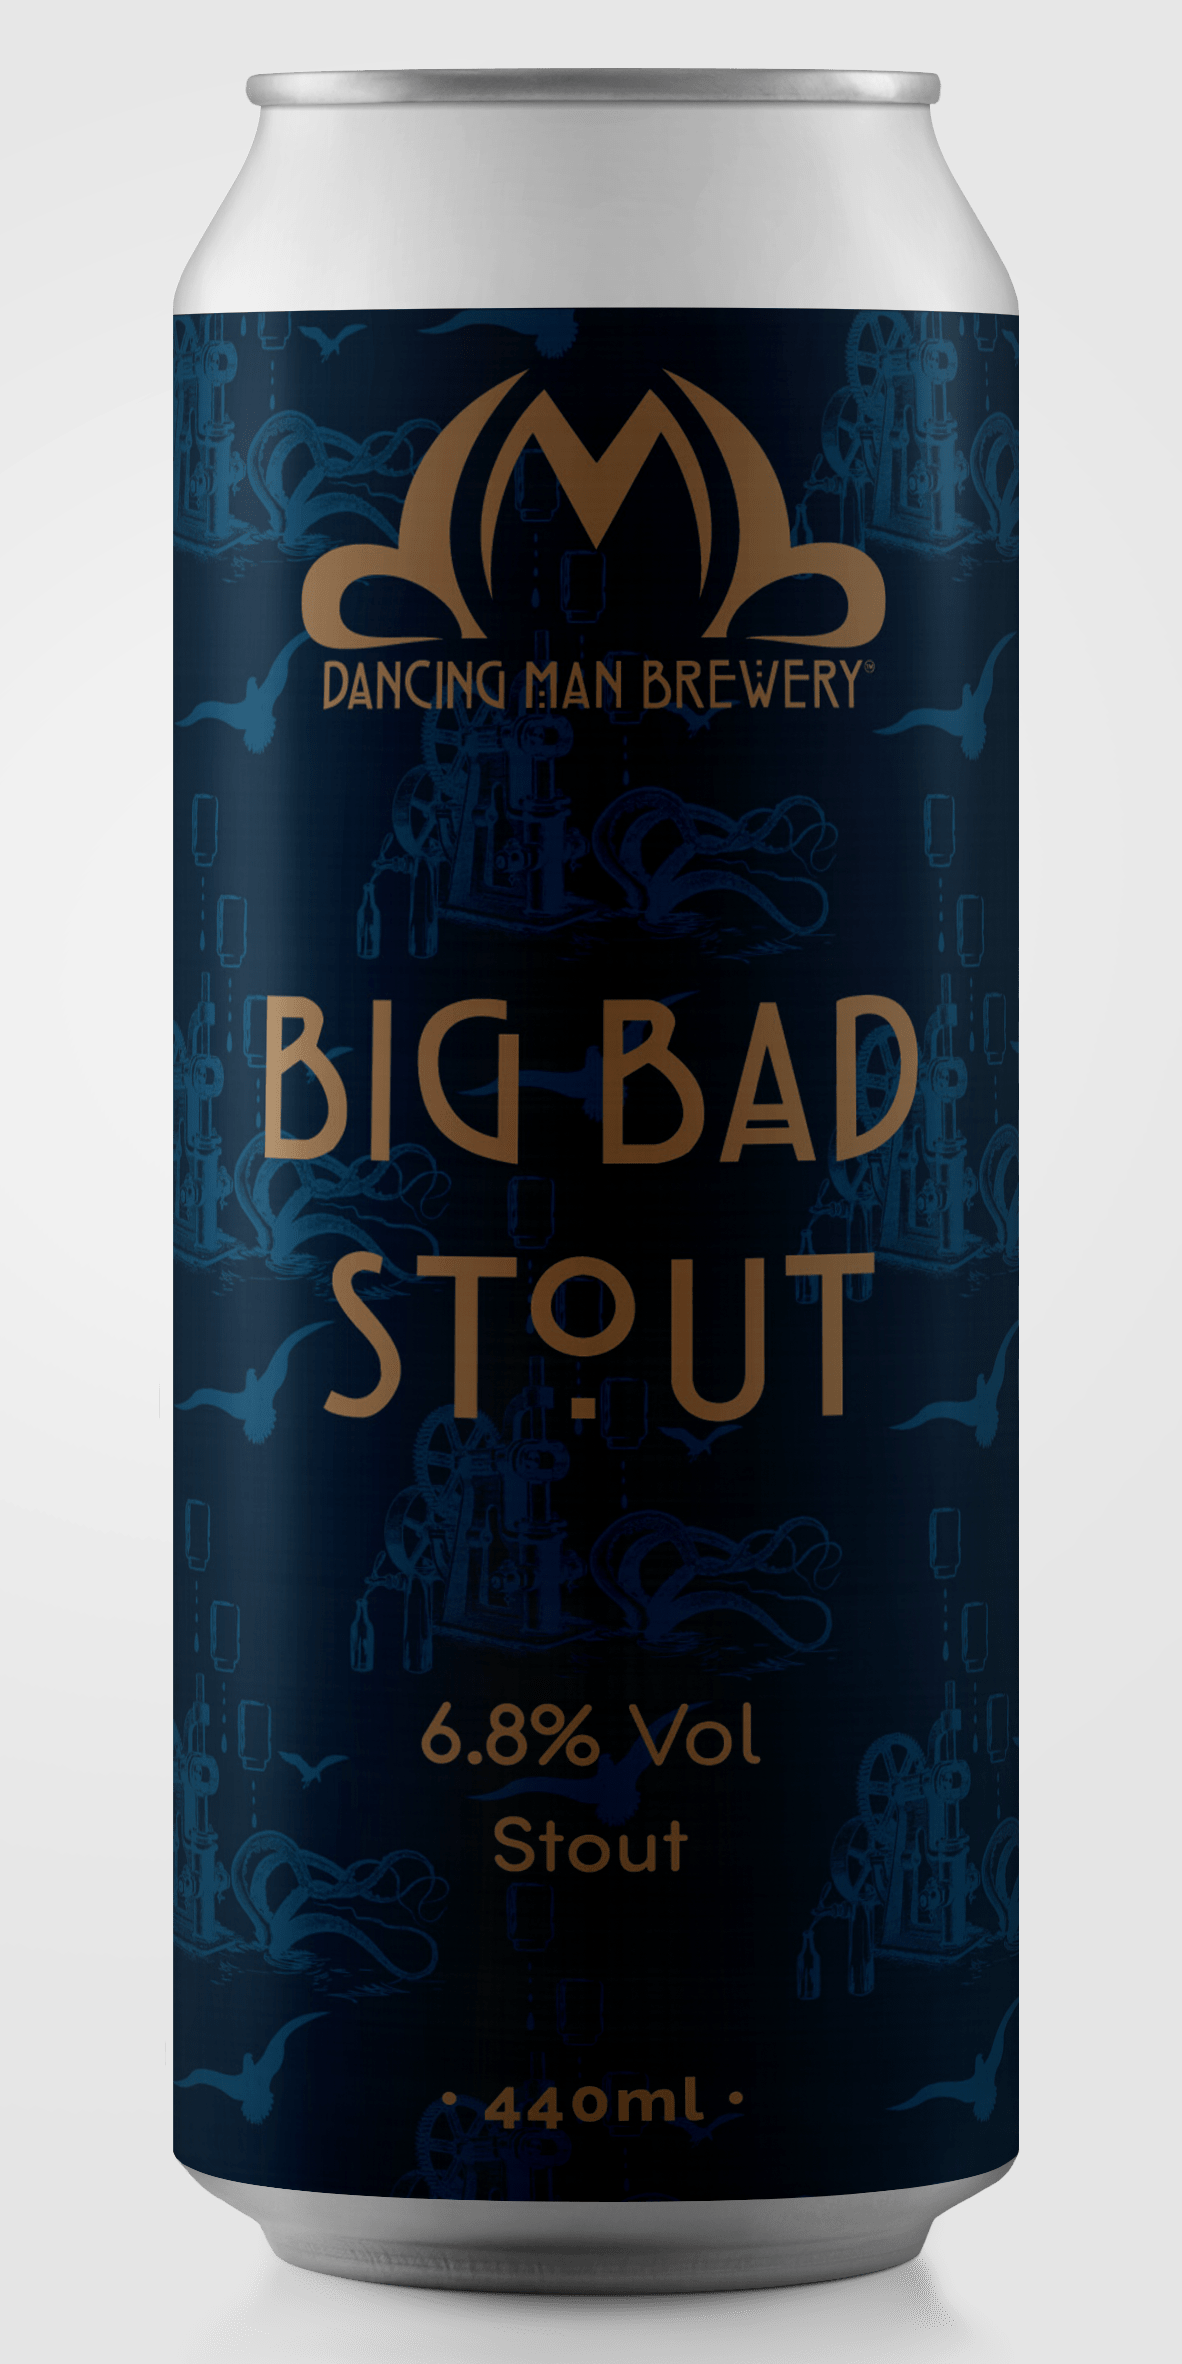 Big Bad Stout